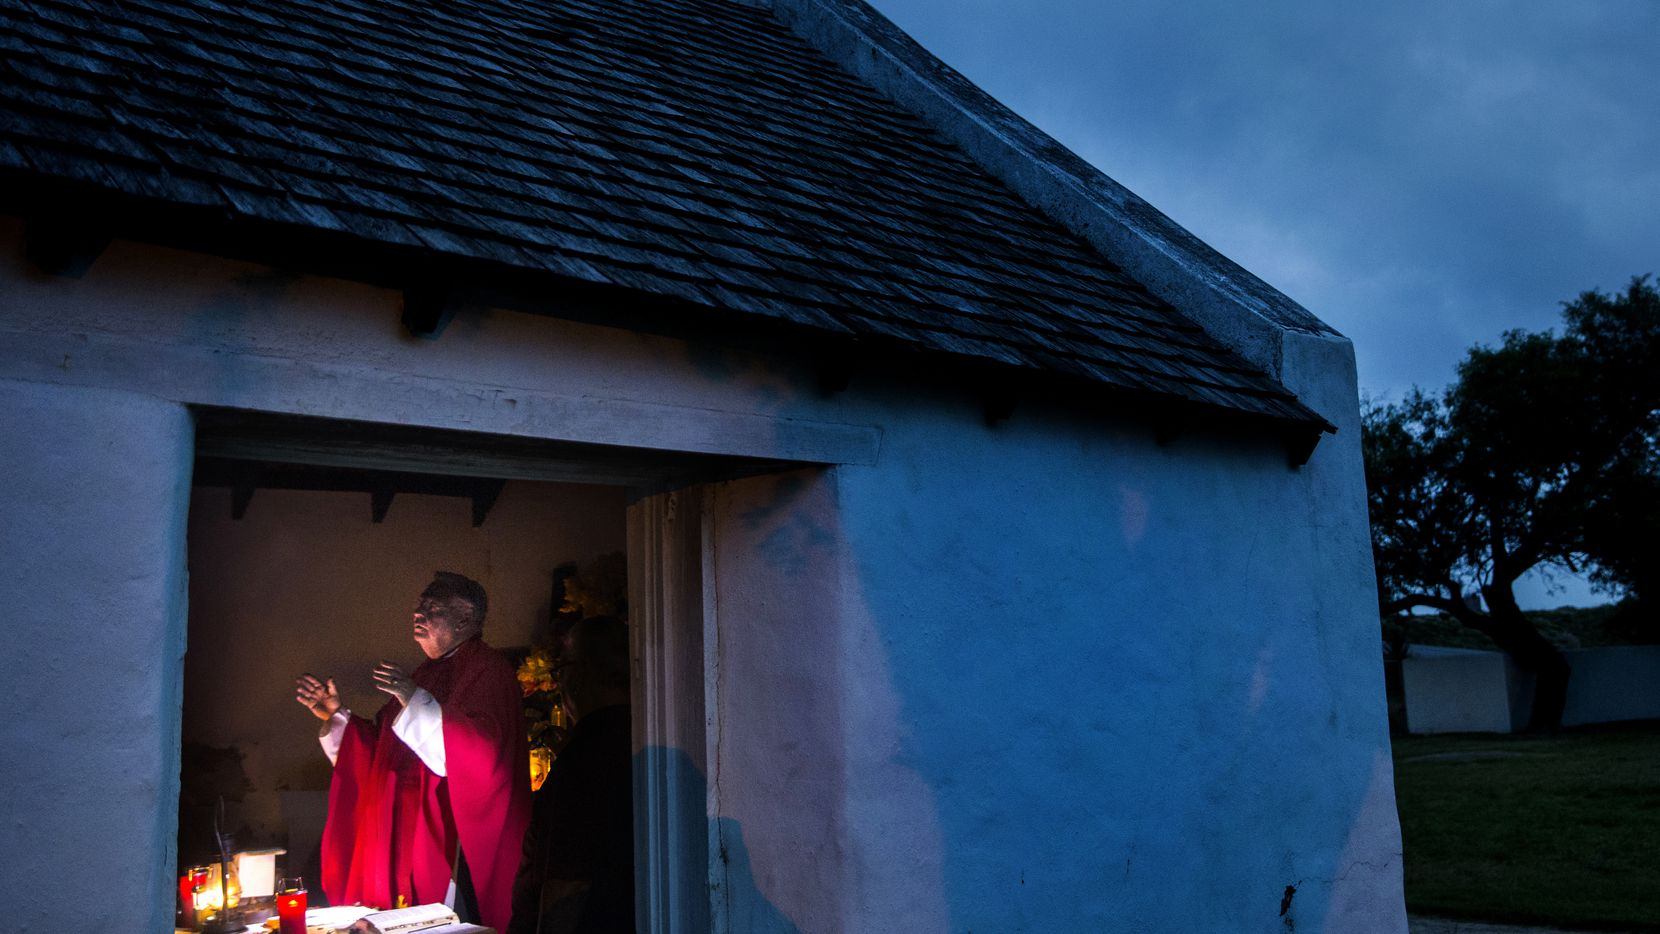 """As the sun begins to rise, Father Roy Snipes opens a sunrise Mass at La Lomita chapel near Mission. Snipes began holding Mass each Friday at 6:55 a.m. last fall to ask for divine intervention for those seeking asylum. """"When we come out here in the morning and you see the sun begin to peak up and you hear the birds chirping, it's a special experience that brings you back to our roots in this land,"""" said Snipes."""